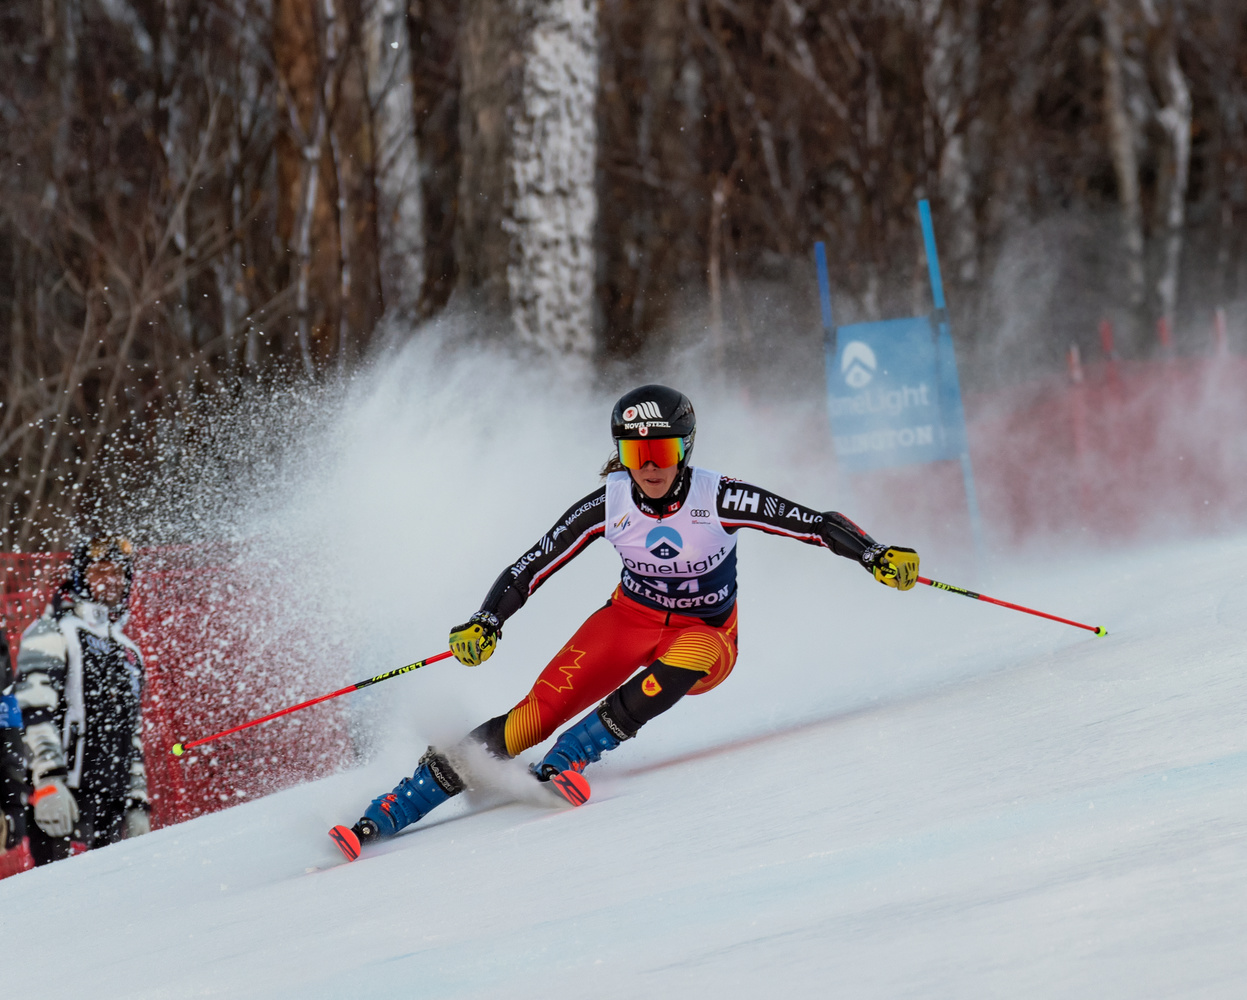 FIS Women's World Cup by John Nicholson